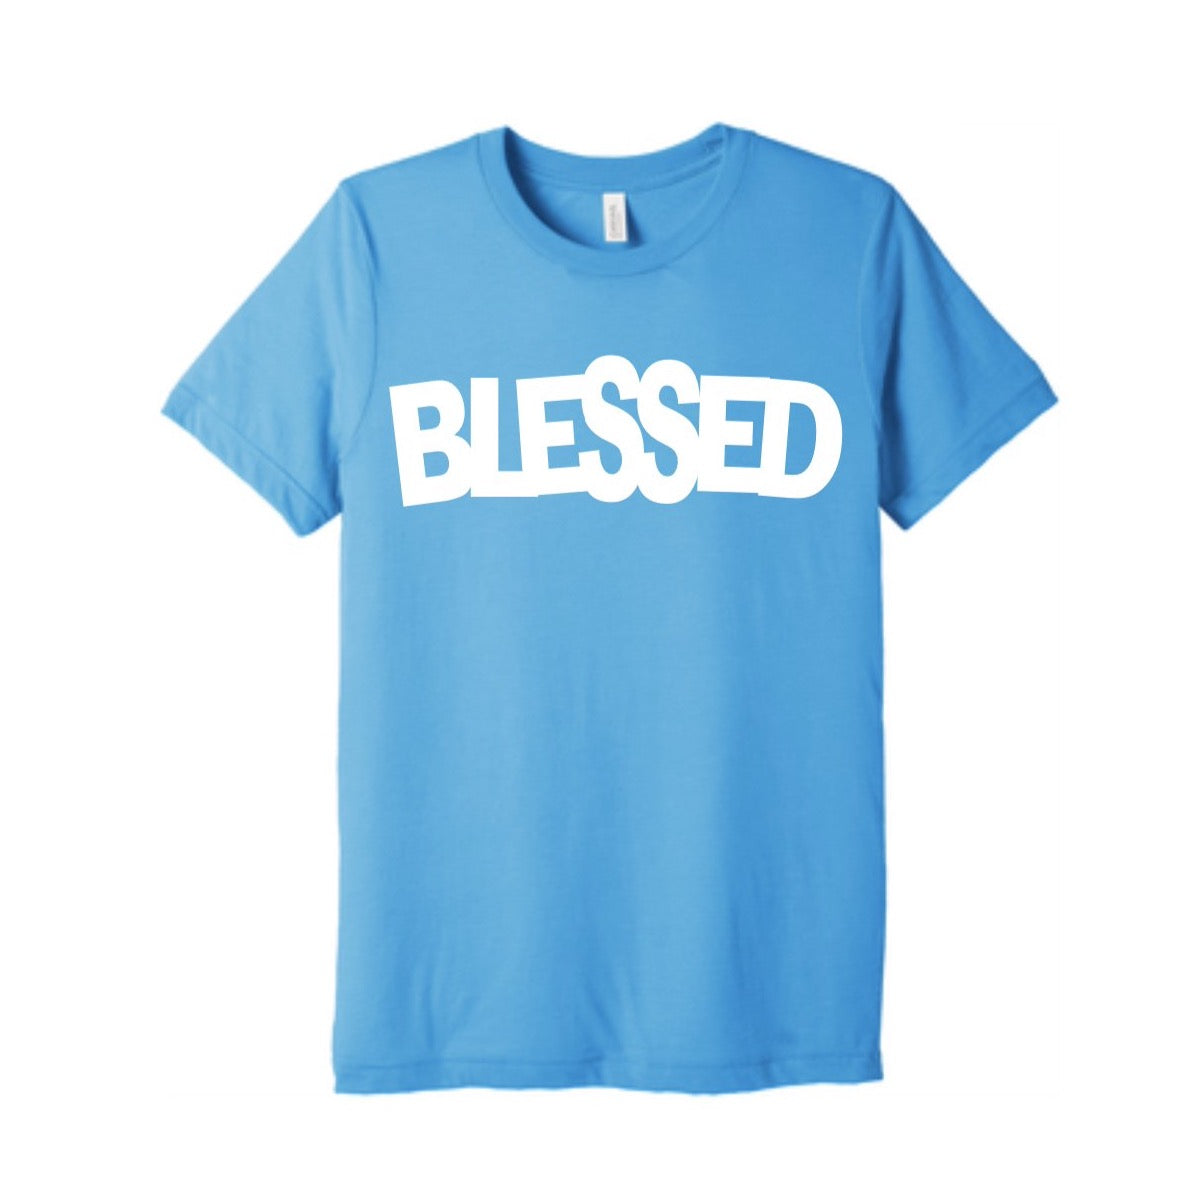 BLUE AND WHITE BLESSED TEE